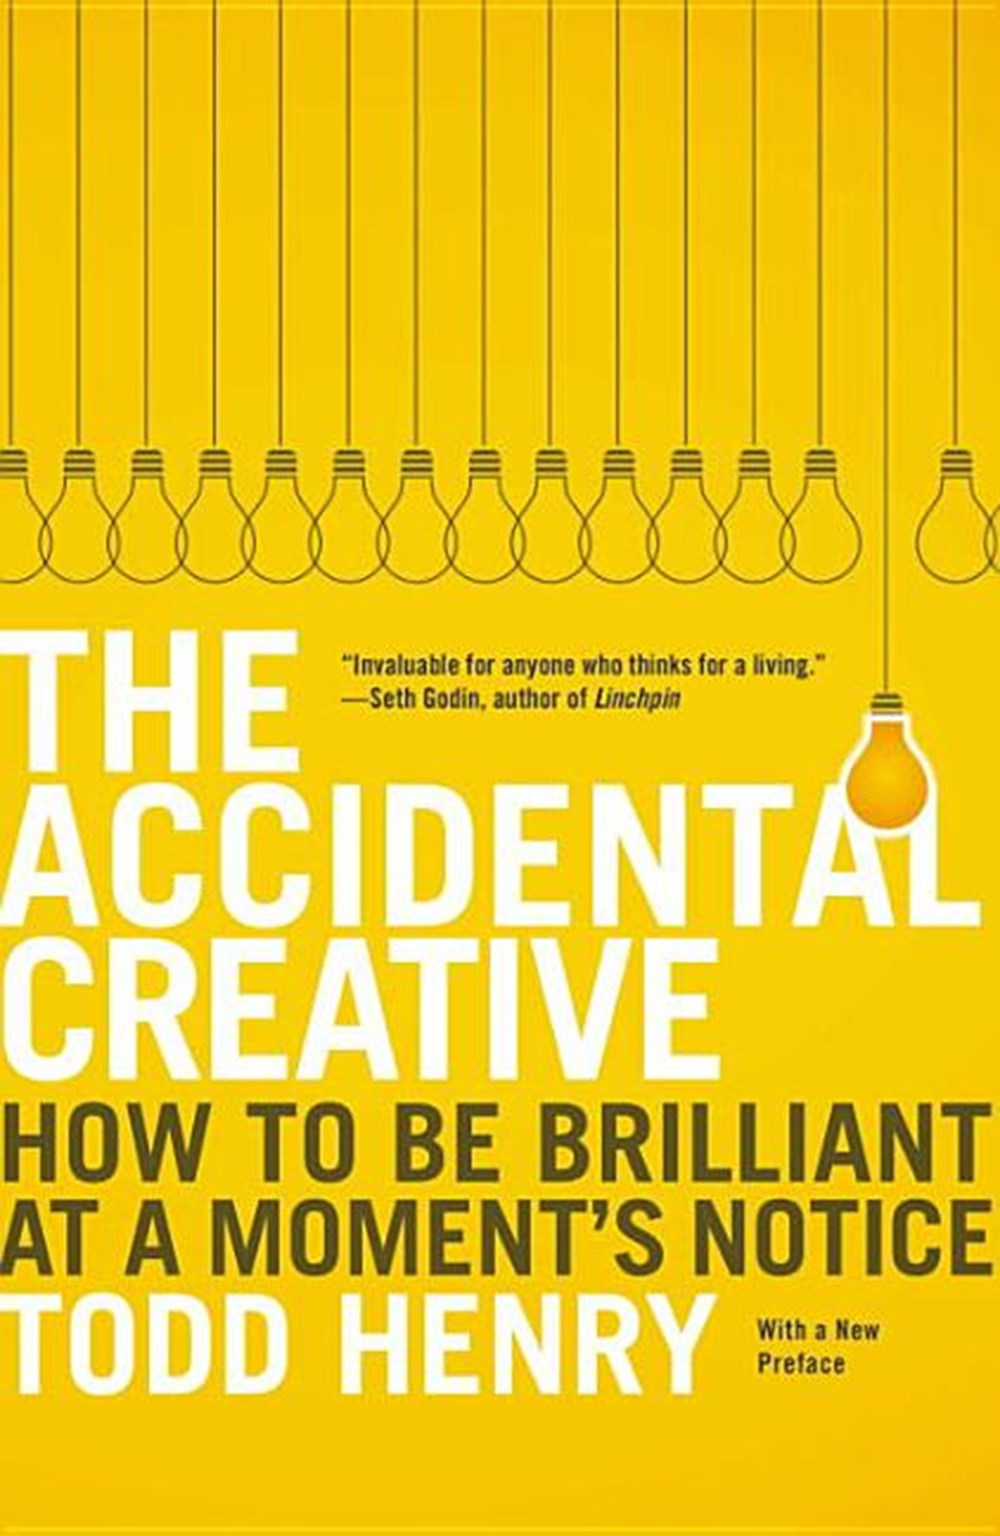 Accidental Creative How to Be Brilliant at a Moment's Notice